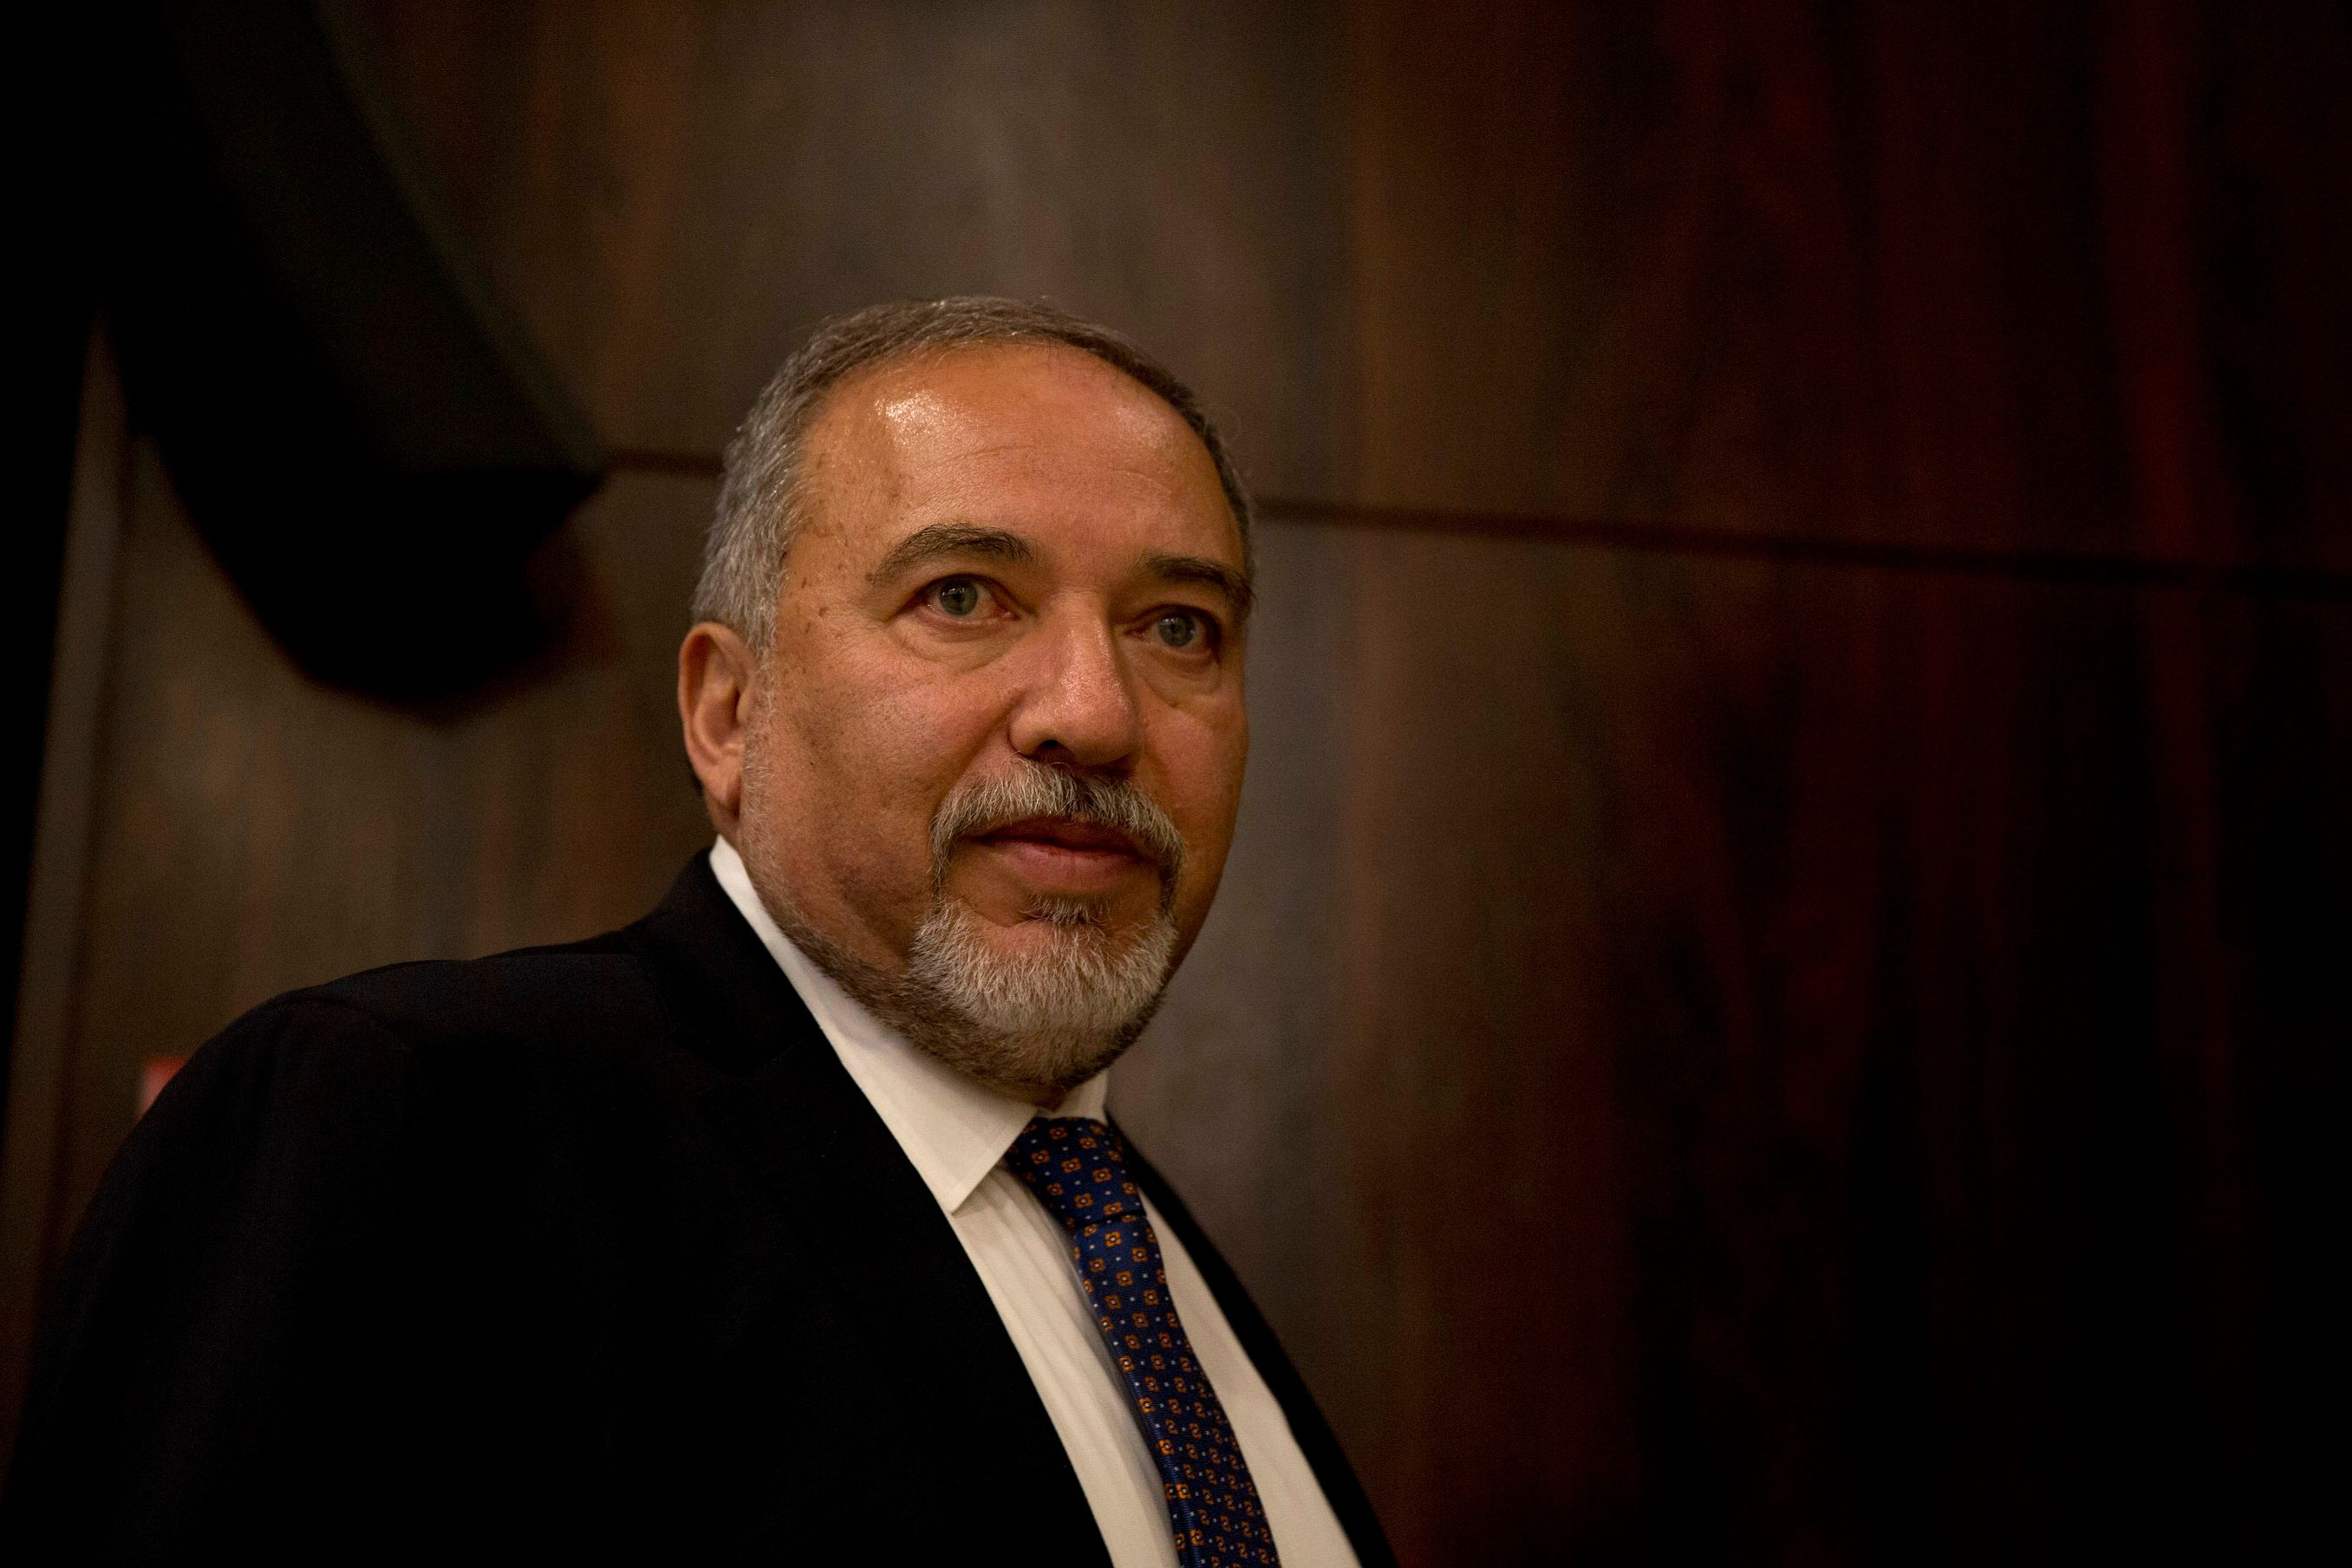 Israel's Liberman on ultra-Orthodox military draft controversy: All must enlist